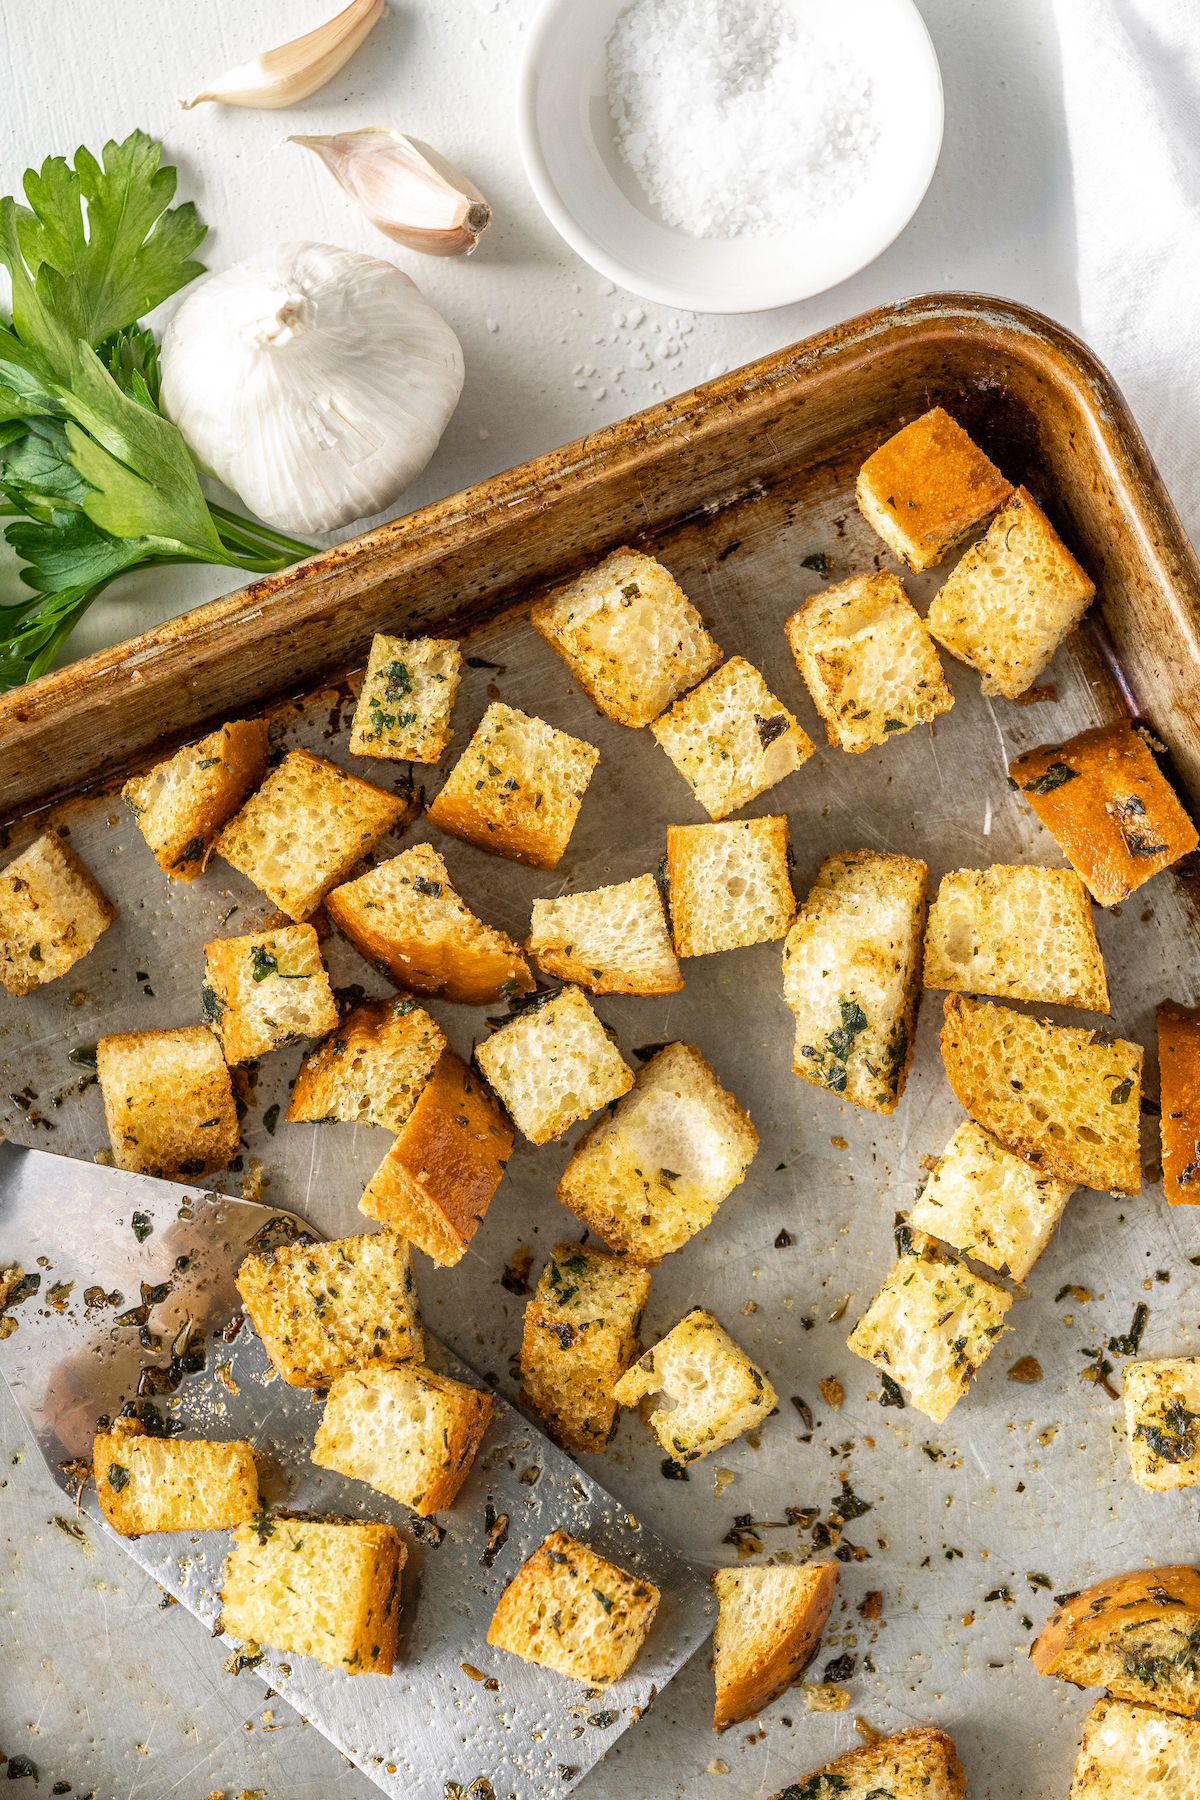 Baked homemade croutons on a baking pan.